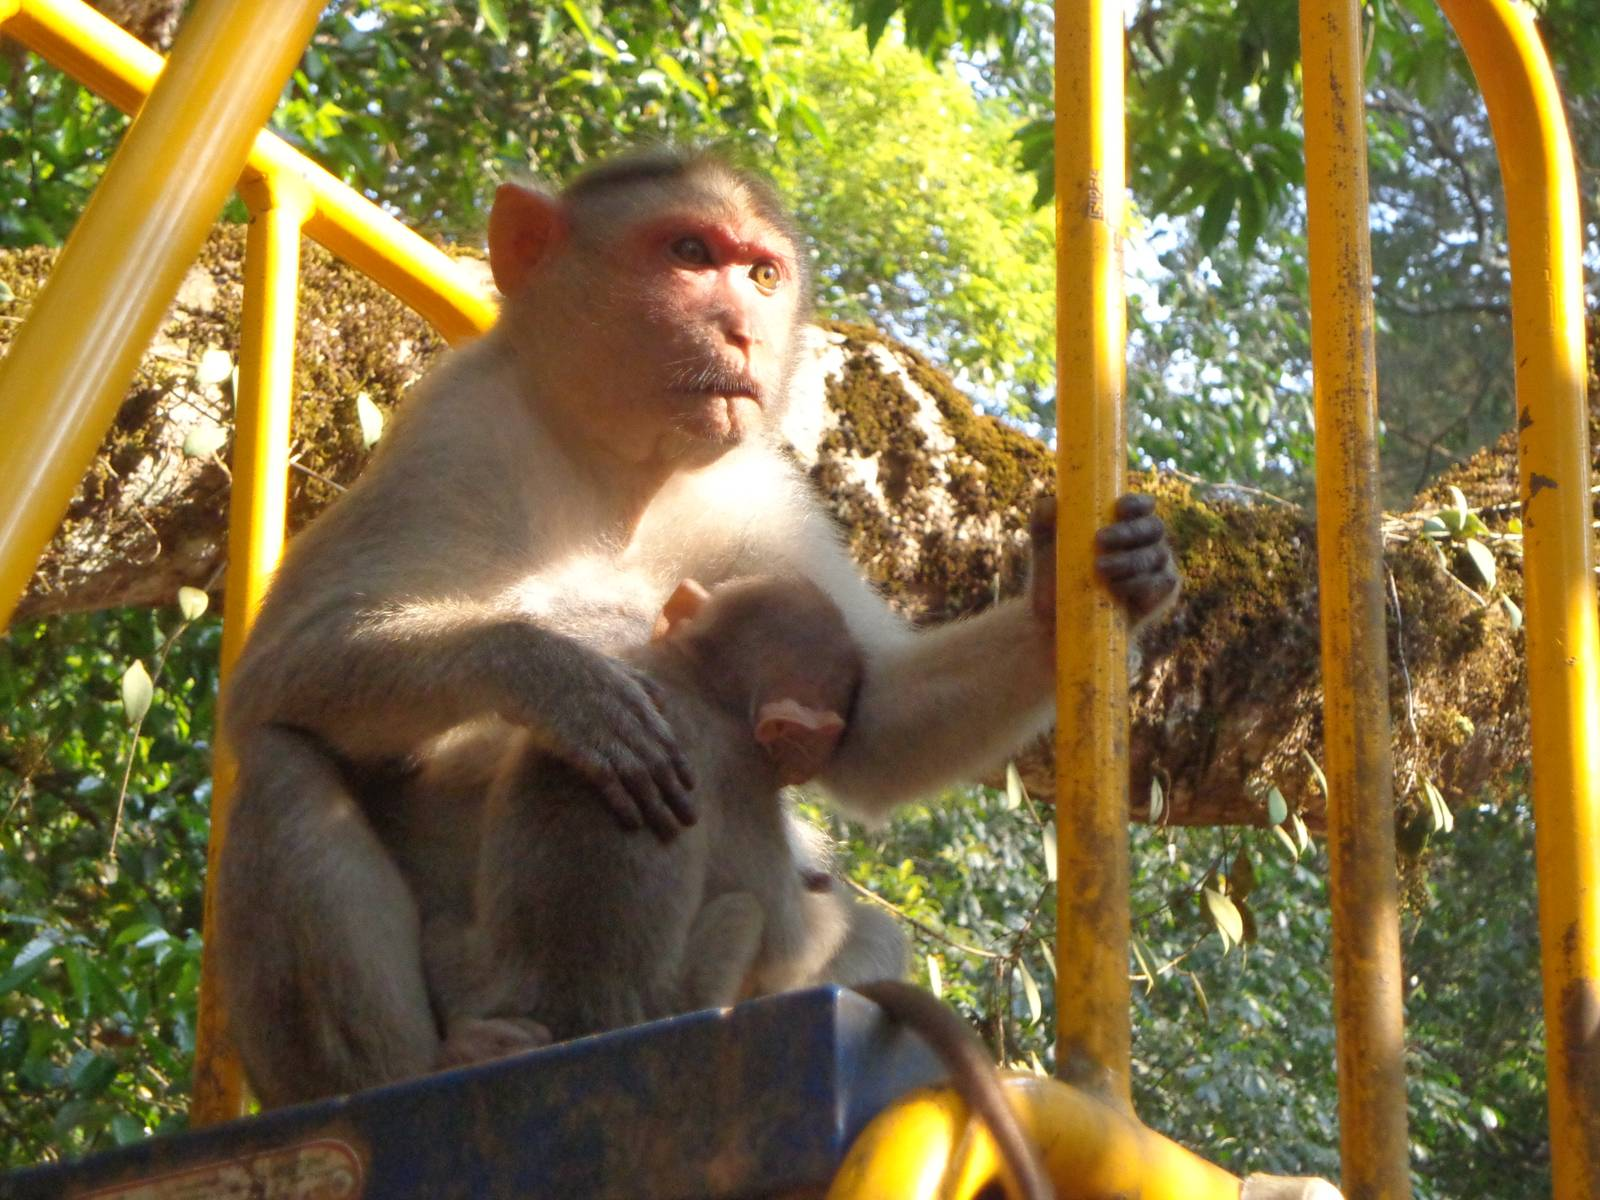 Wayanad is filled with monkeys. Here's one enjoying a slide.